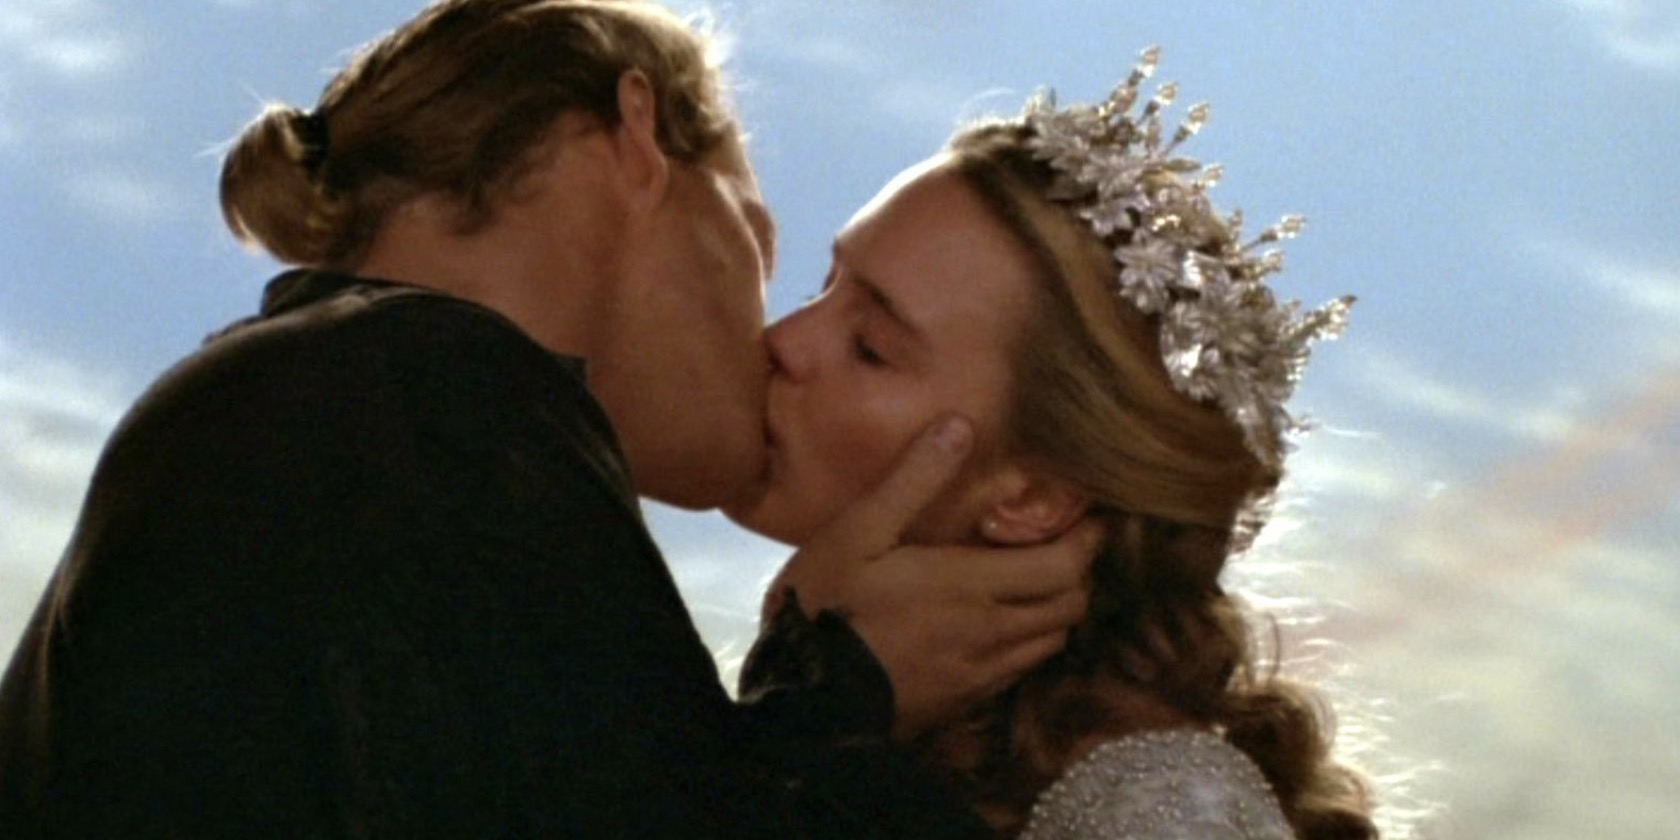 the princess bride, 80s movie end scene, movies